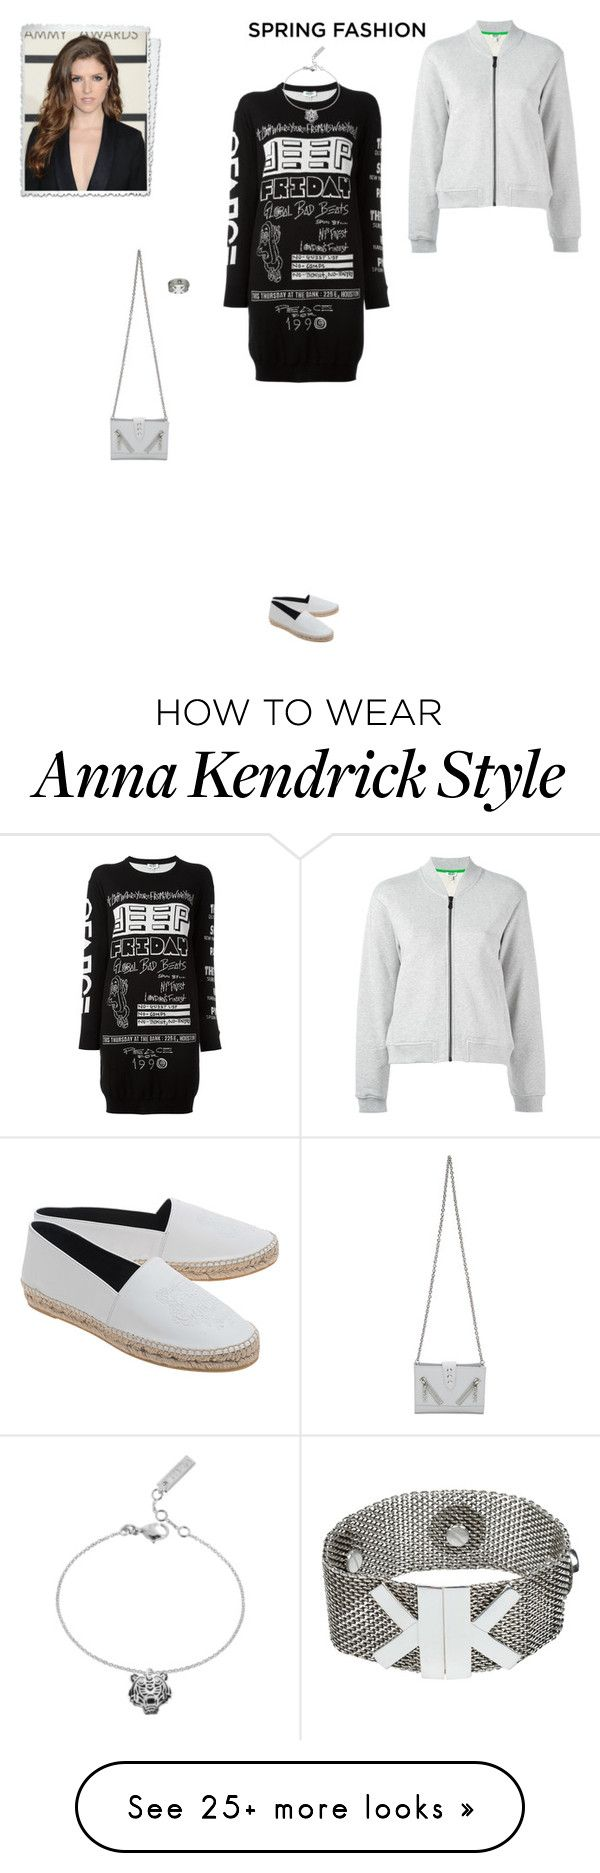 """""""#7576 - Kenzo"""" by pretty-girl-in-fashion on Polyvore featuring Kenzo, kenzo and springfashion"""